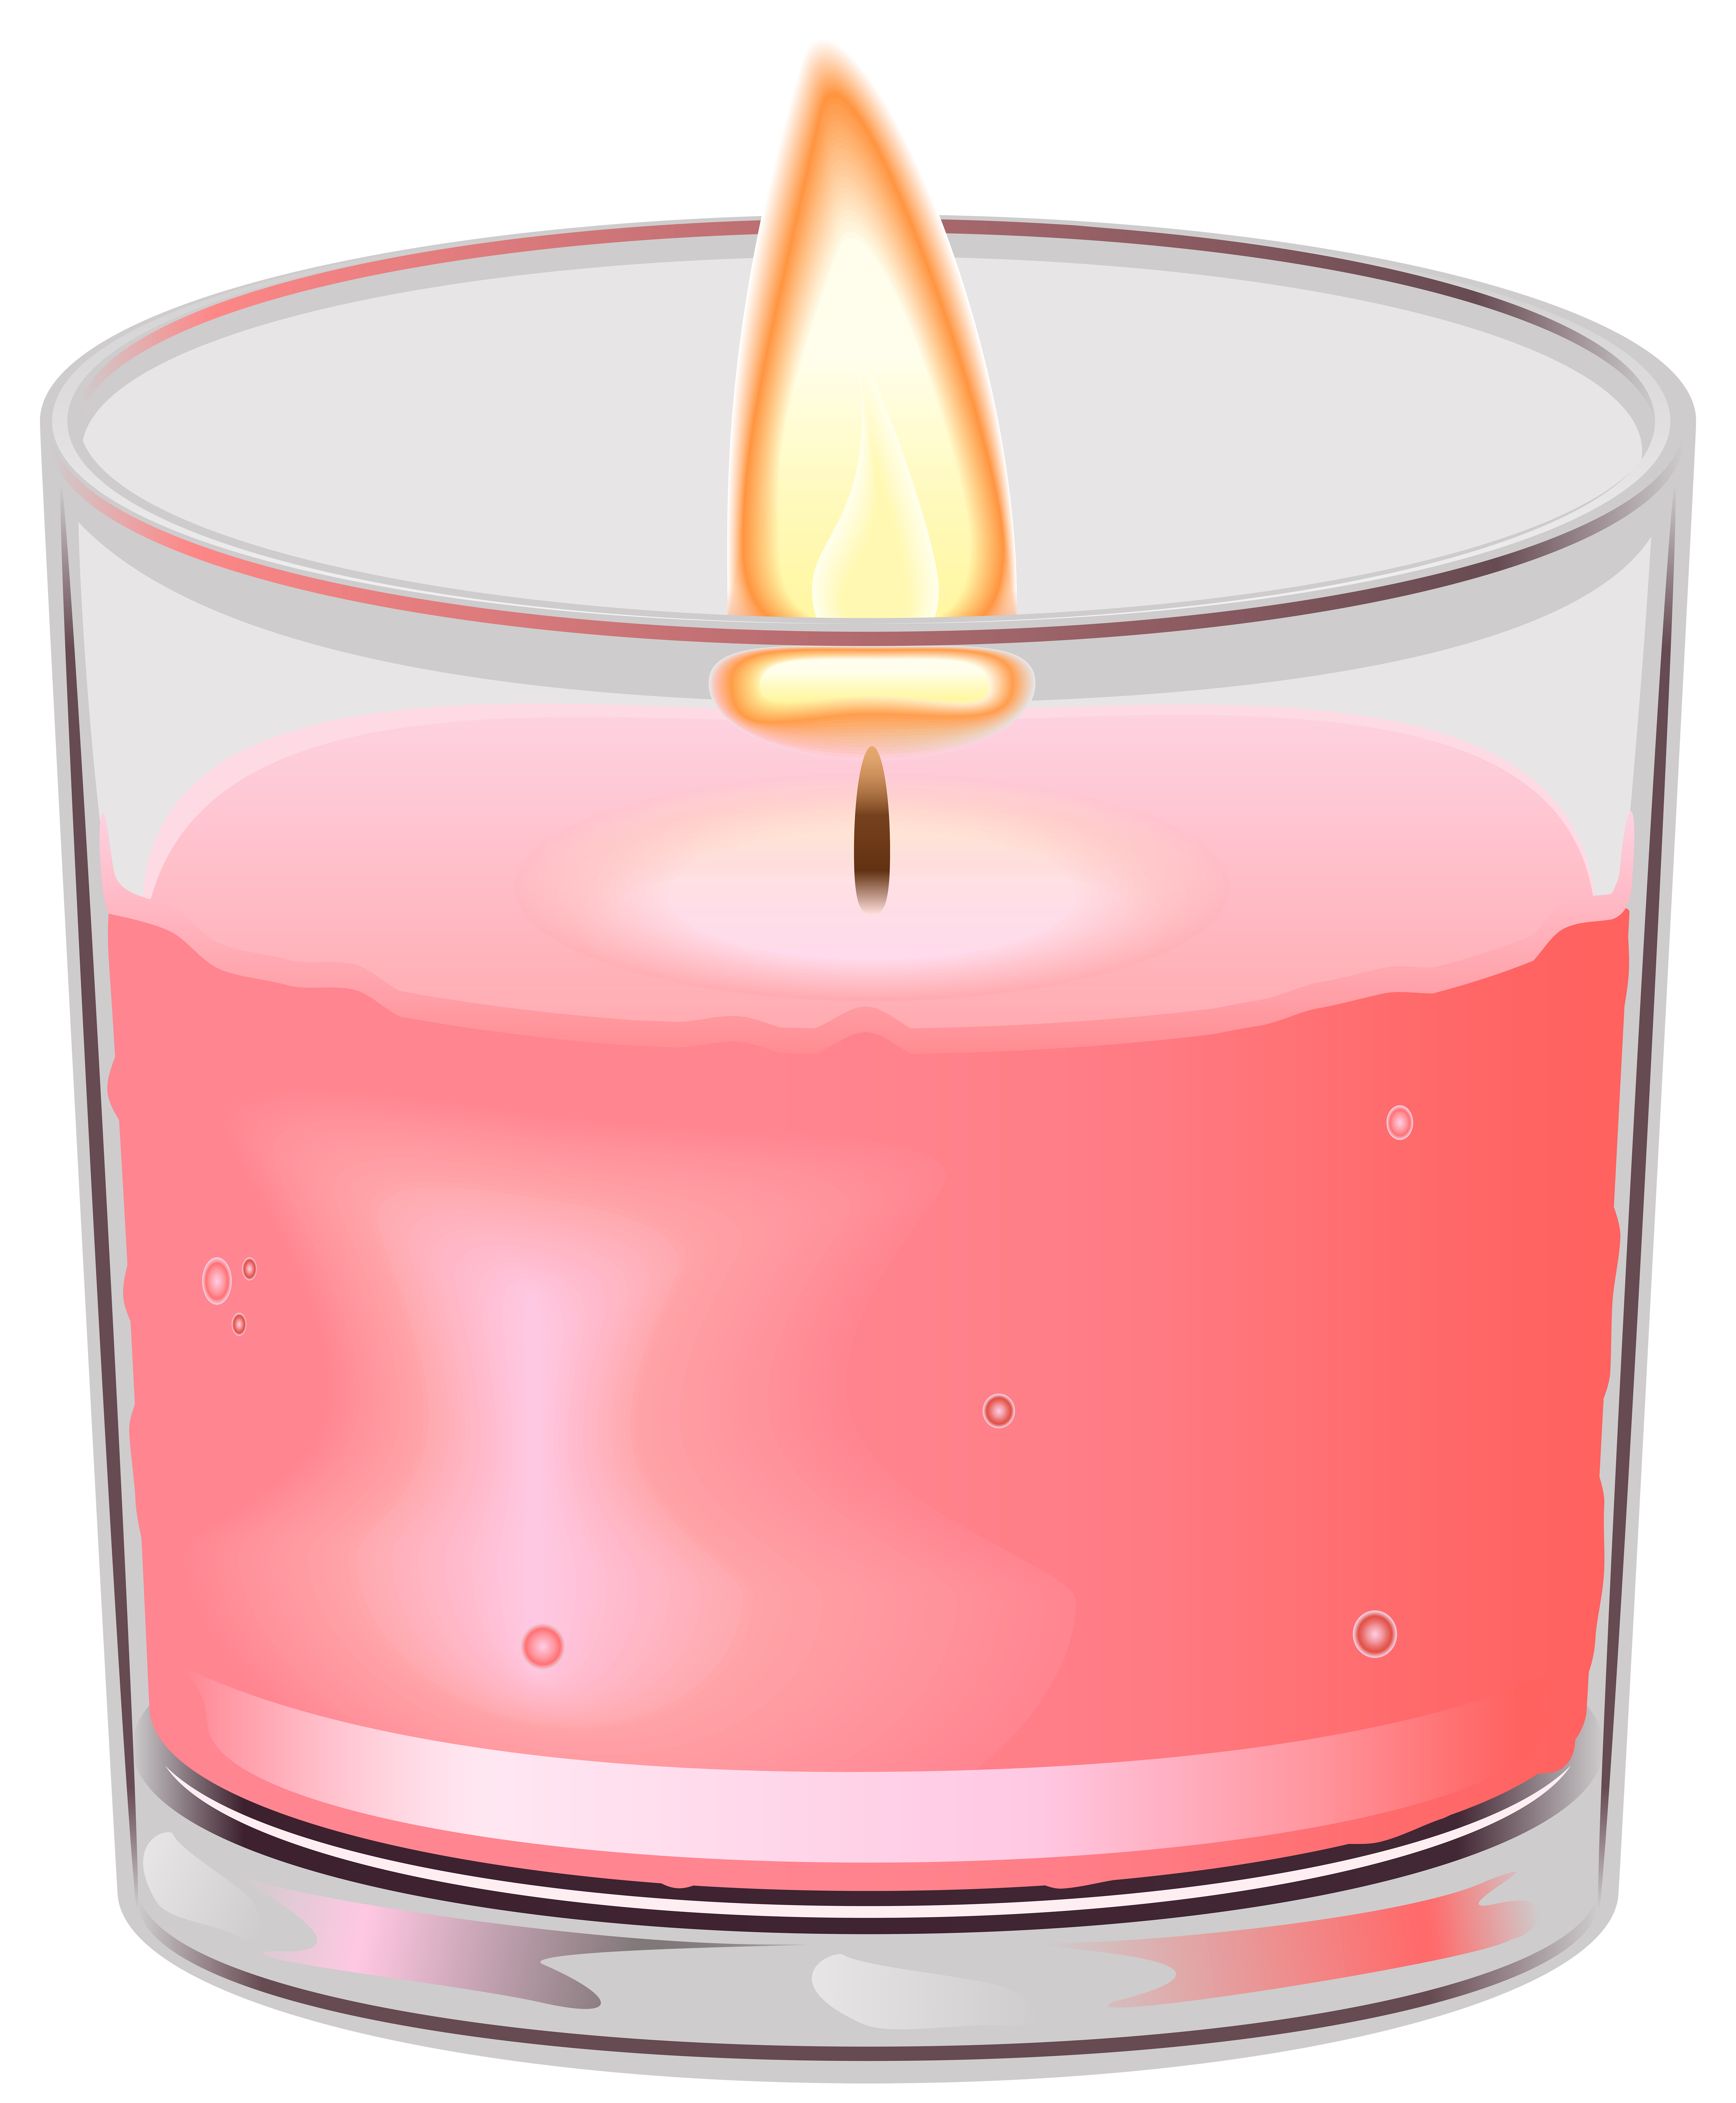 Book and candle clipart svg freeuse library Candle in Cup PNG Clip Art - Best WEB Clipart svg freeuse library